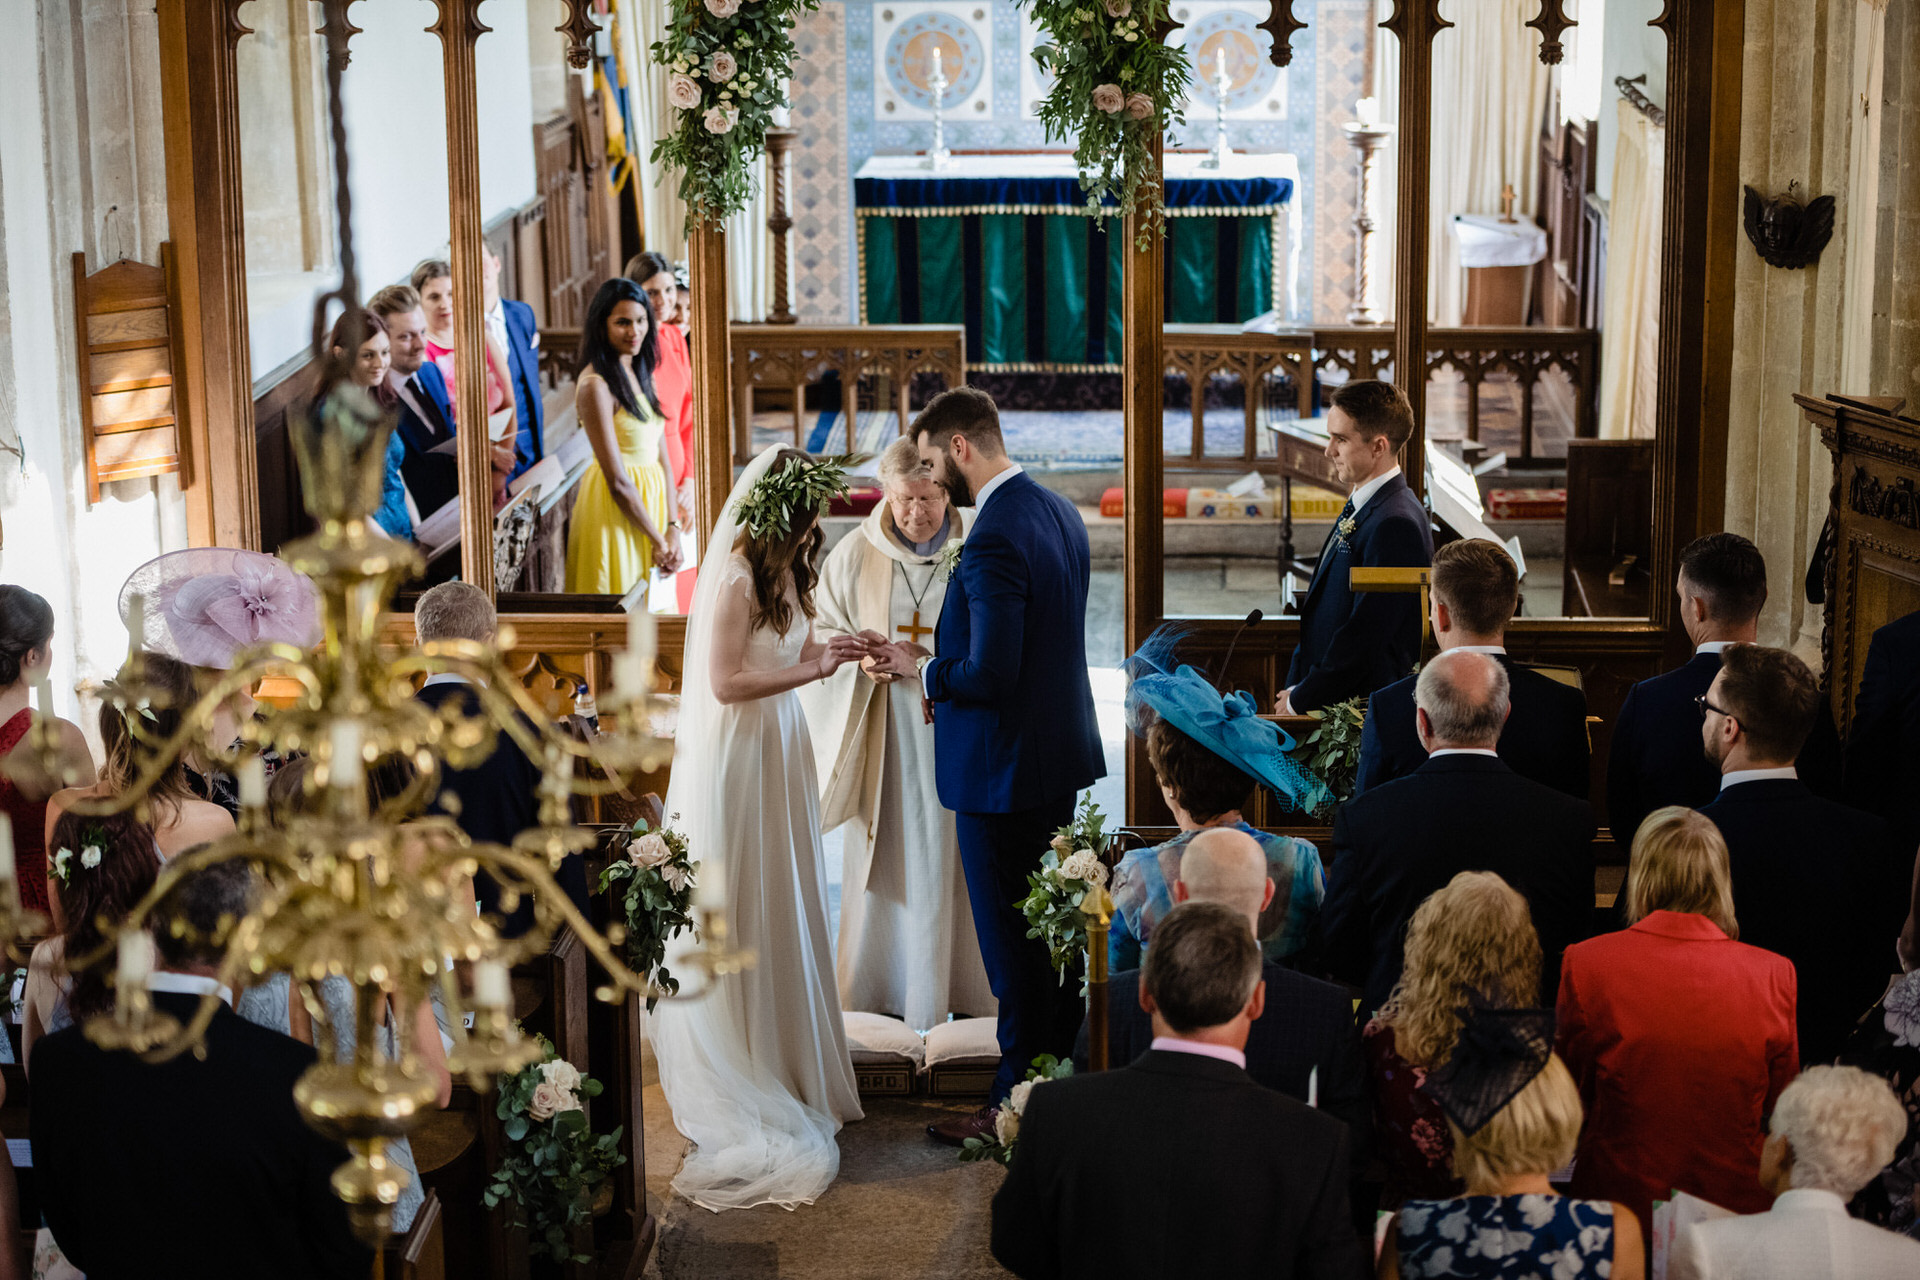 East Pennard church wedding photography